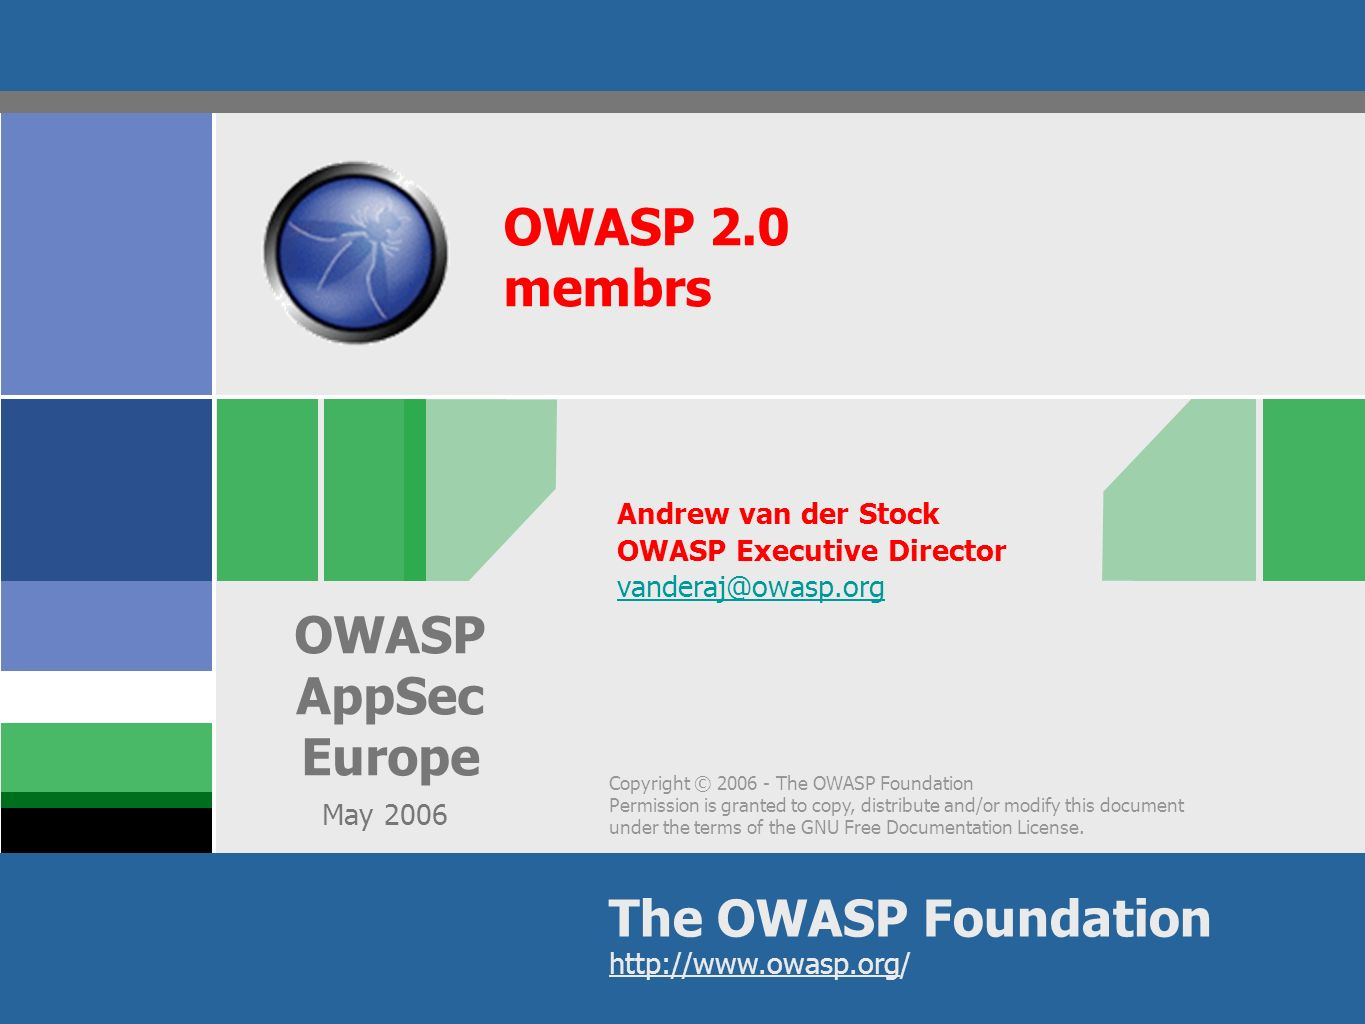 Copyright © The OWASP Foundation Permission is granted to copy, distribute and/or modify this document under the terms of the GNU Free Documentation License.